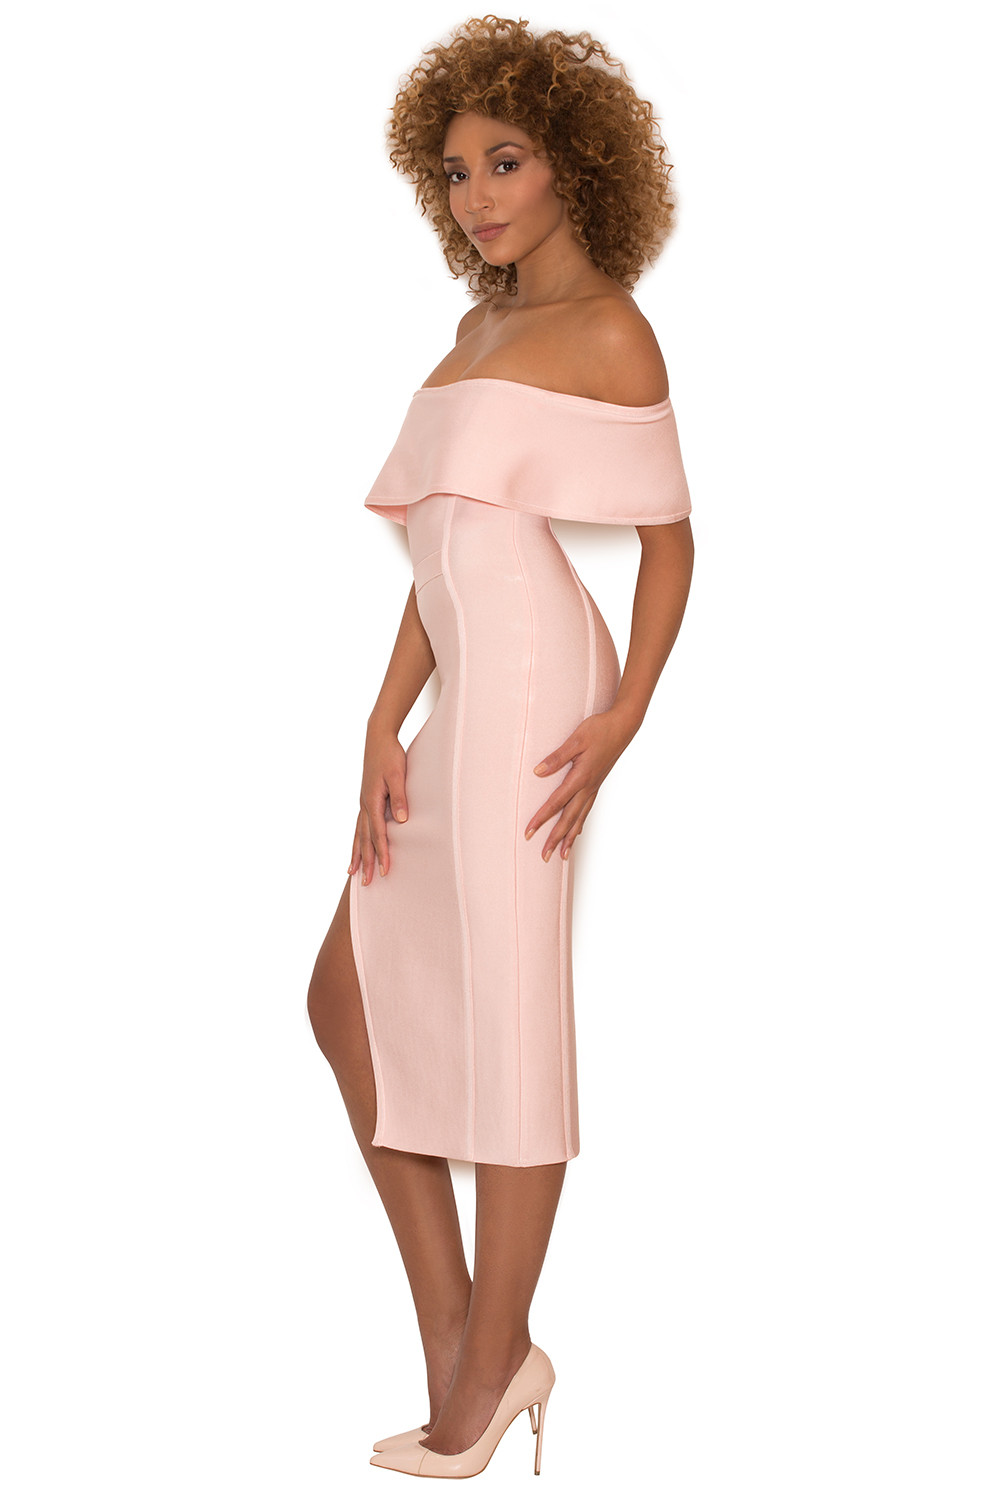 Clothing : Bandage Dresses : 'Danae' Light Pink Off the Shoulder ...